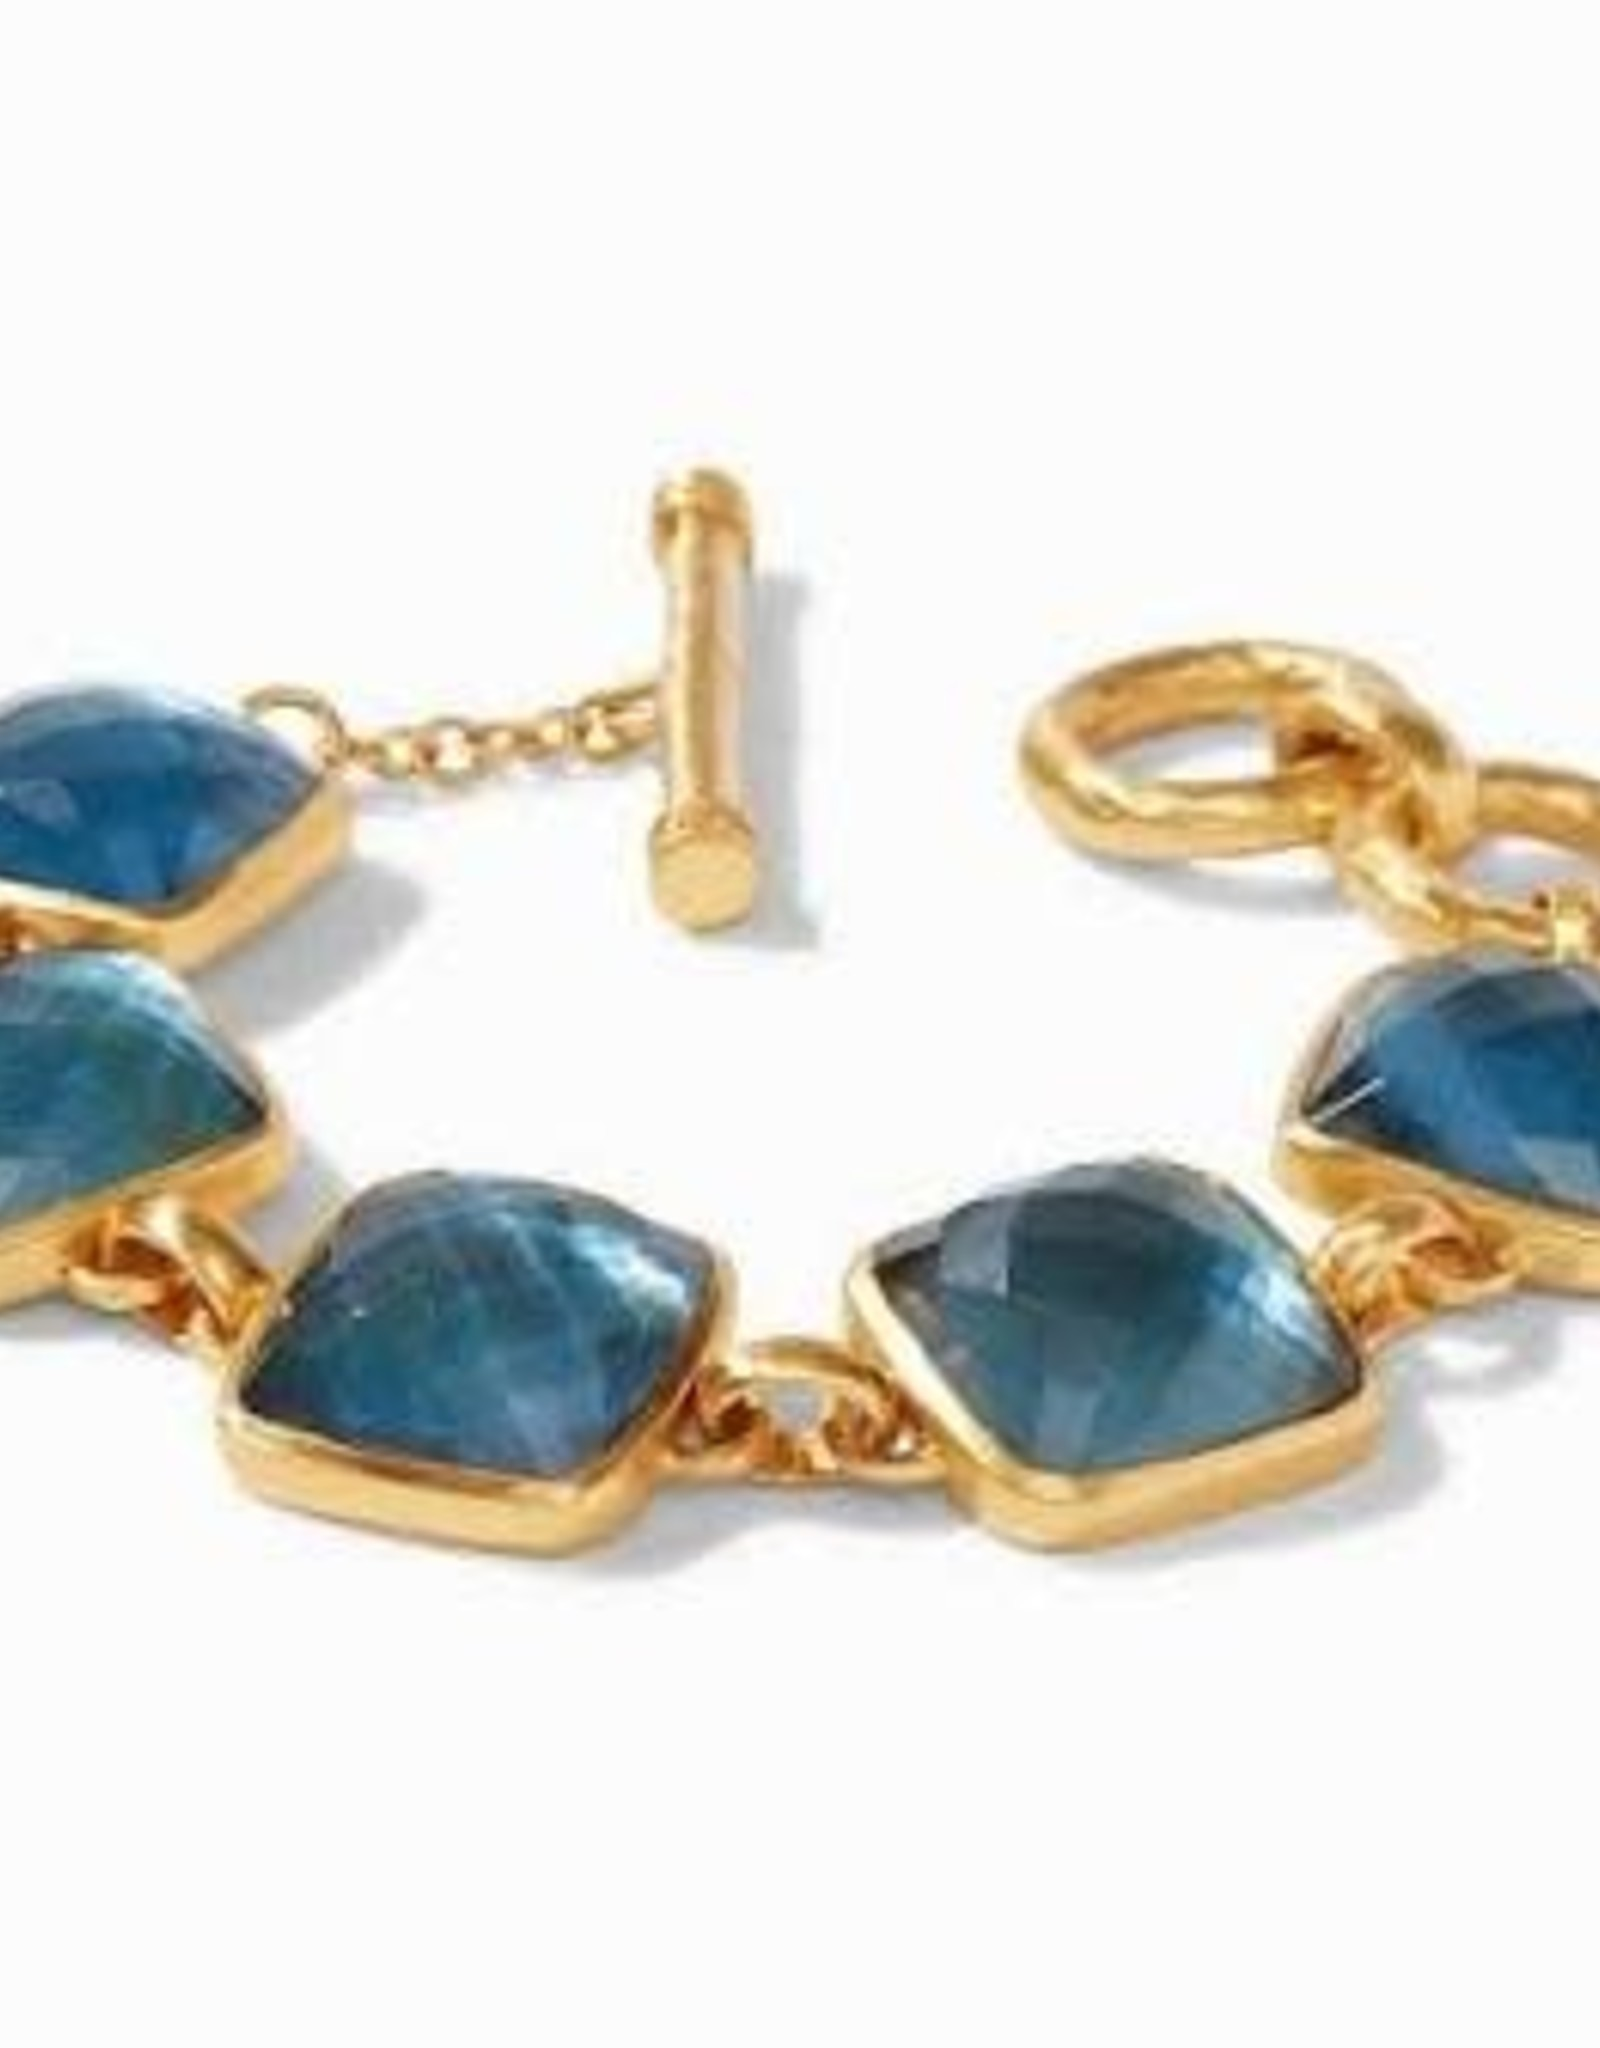 Julie Vos Catalina Bracelet Gold Iridescent Azure Blue with Pearl Accents